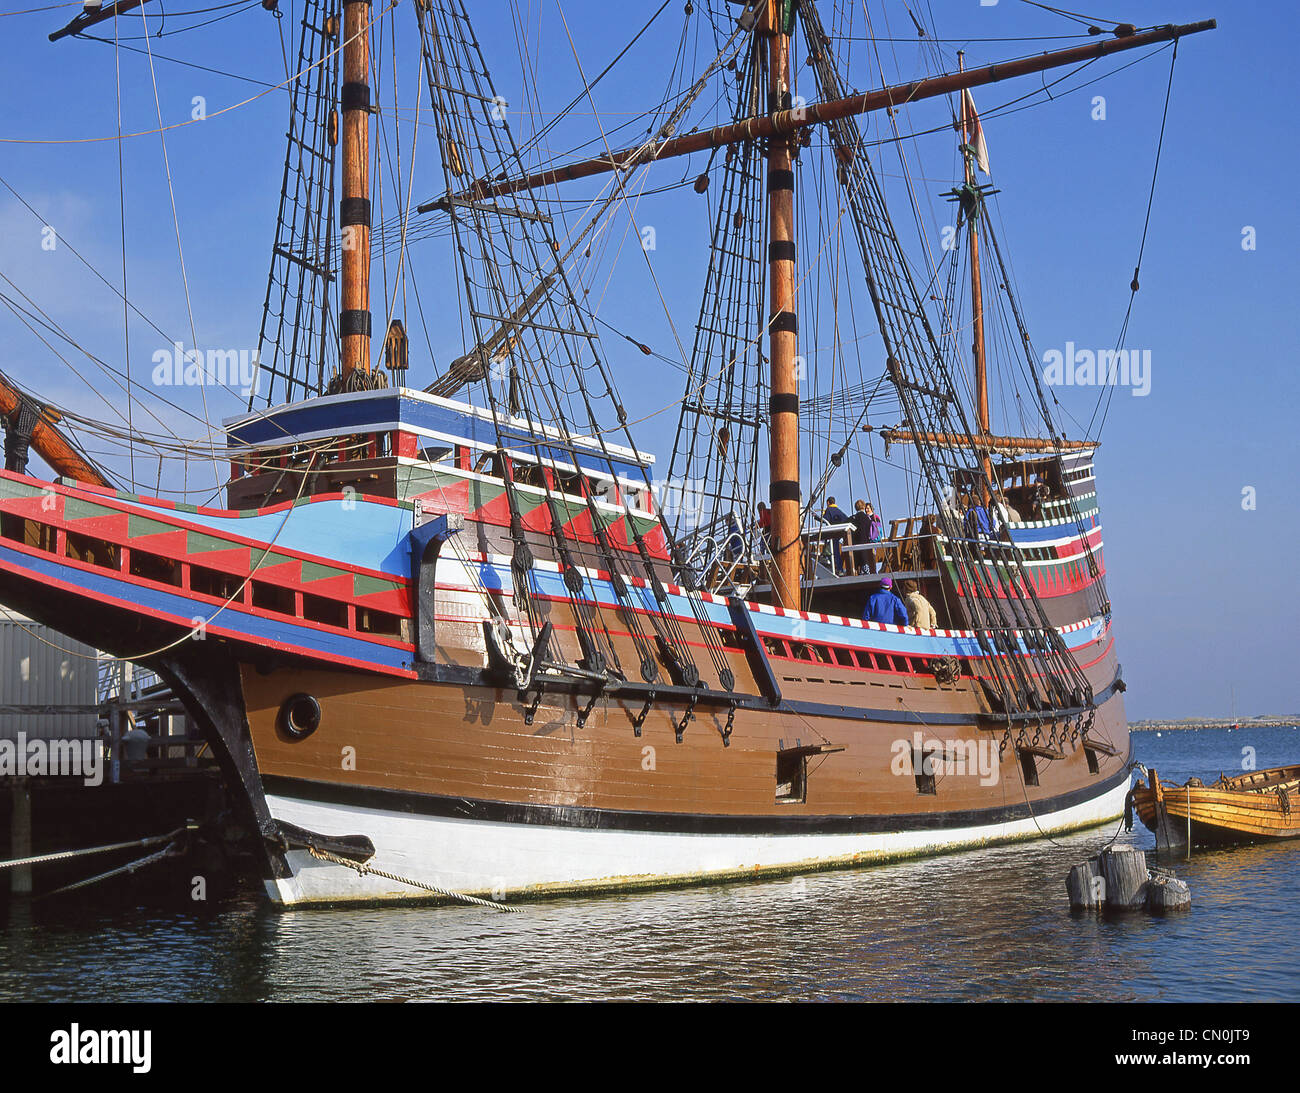 Mayflower II replica ship, Plymouth Rock, Plymouth Harbor, Plymouth, Massachusetts, United States of America Stock Photo